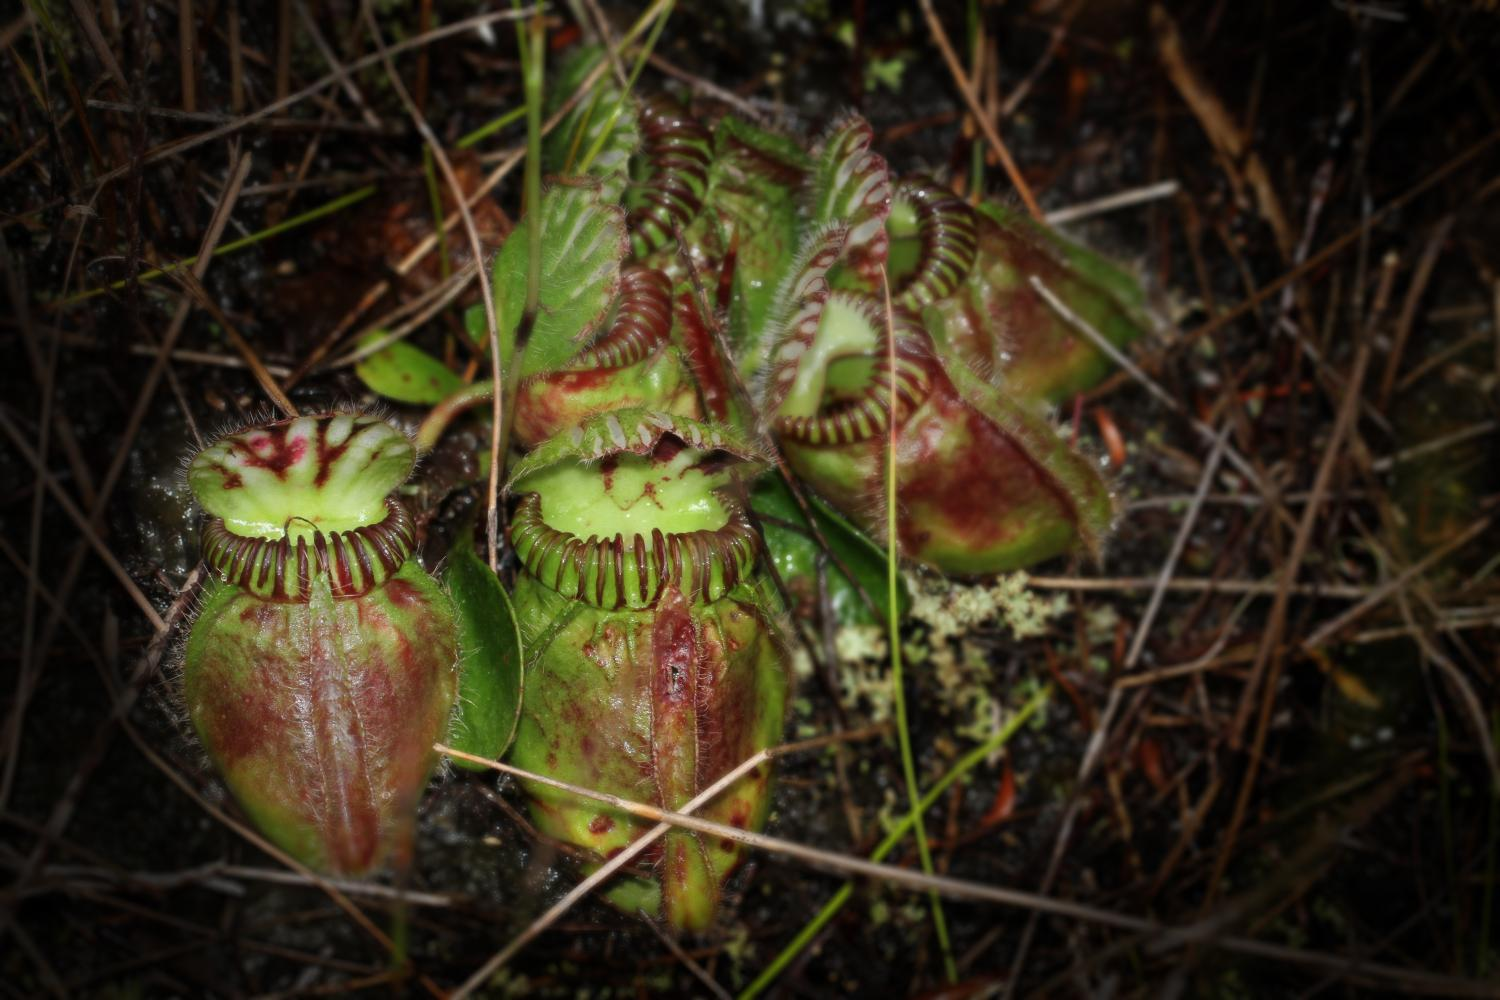 What sex is the pitcher plants